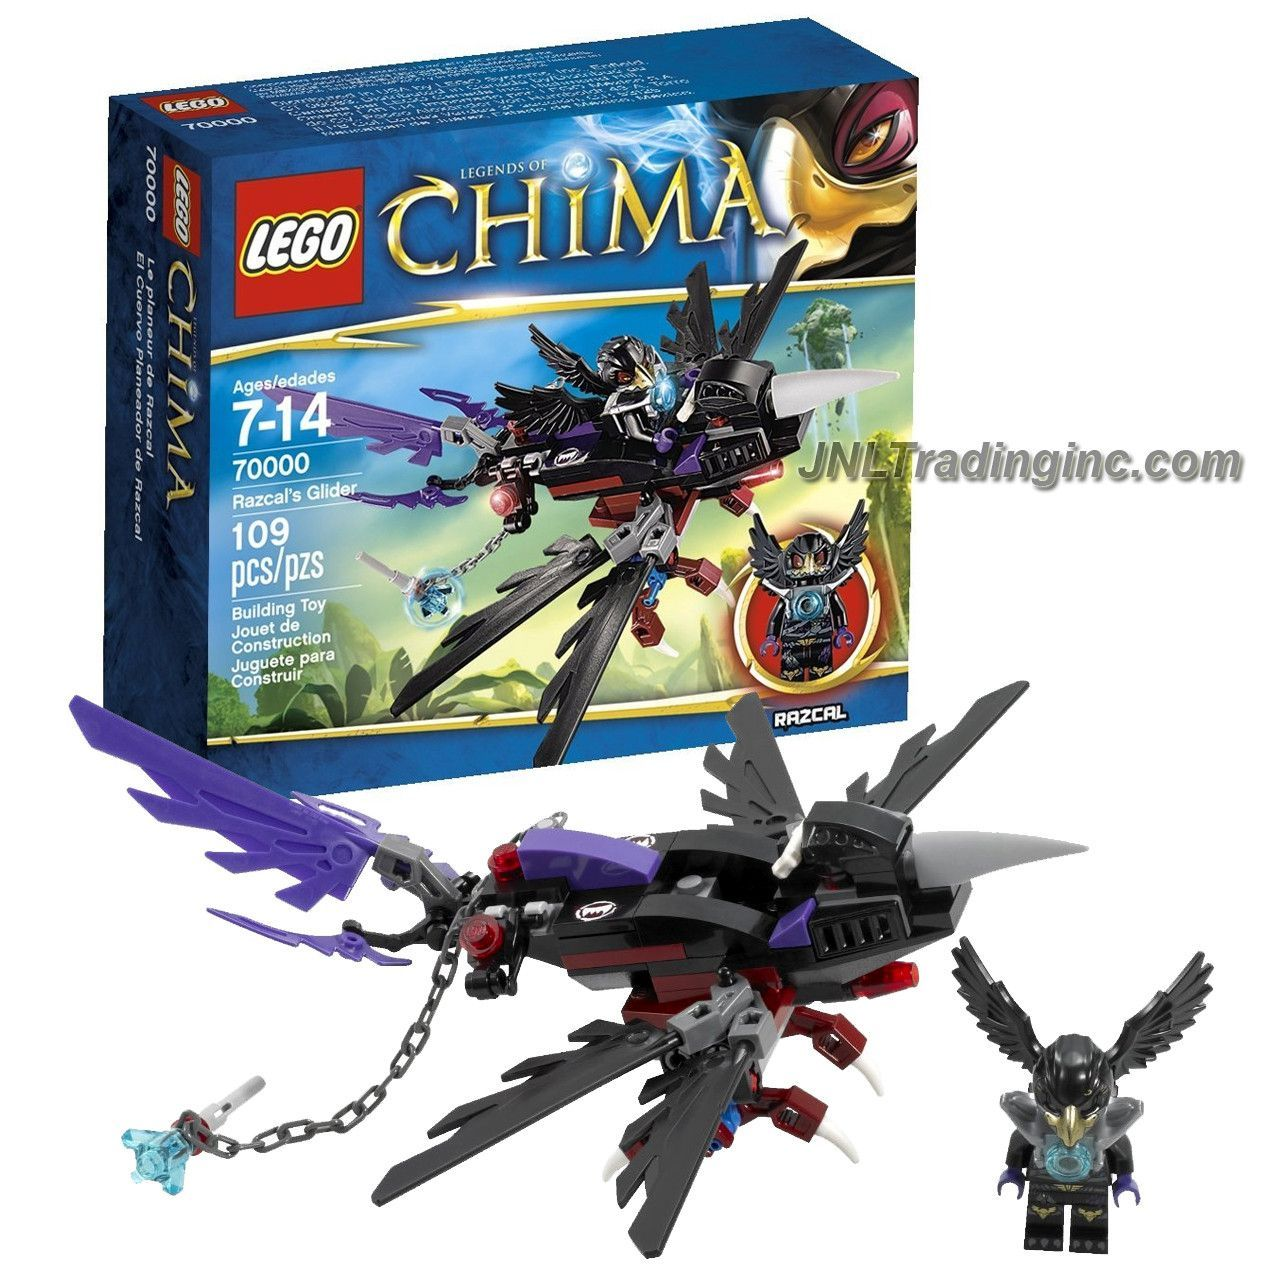 LEGO LEGENDS OF CHIMA RAZCAL/'S GLIDER MINIFIGURE SET 70000 *BRAND NEW SEALED*